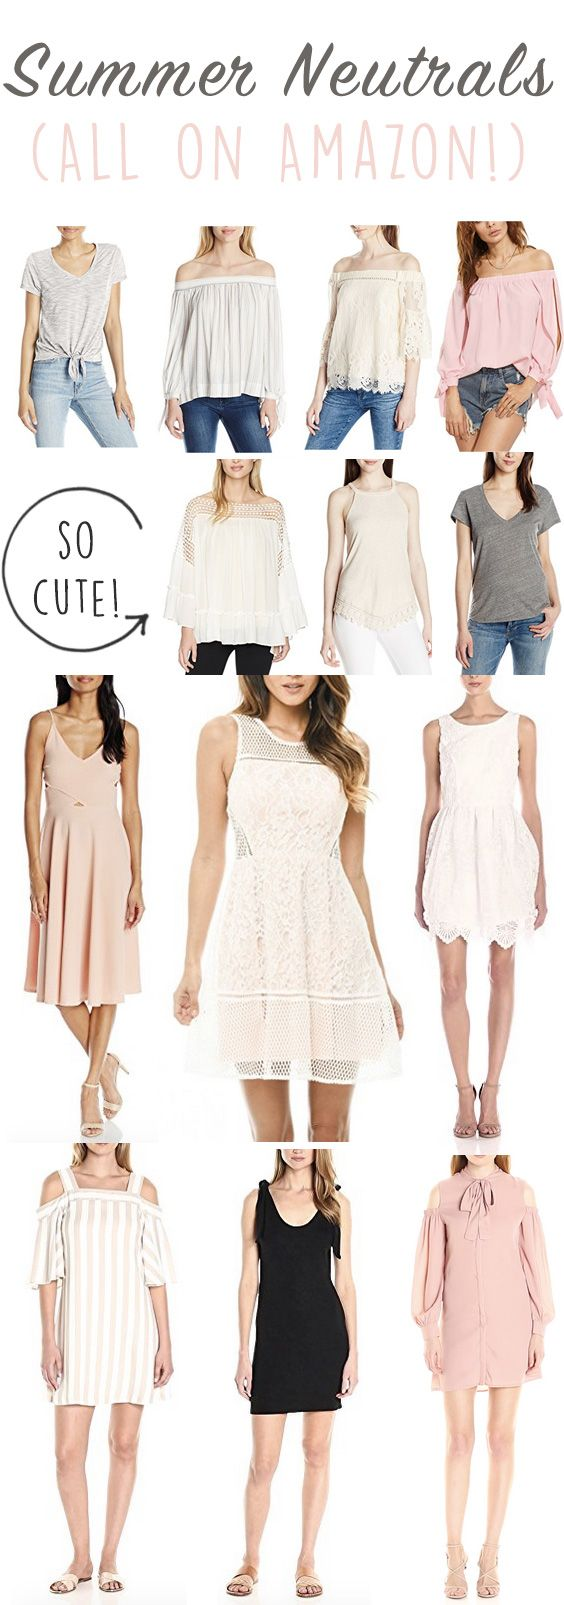 Summer Neutrals on Amazon! The best summer neutral dresses that will have you stylish all year! These soft color palettes will complete your outfits & have you looking chic. Chic summer neutrals are always in style & perfect for starting a capsule wardrobe. Classy neutral tops, stylish dresses & the best neutrals on Amazon!